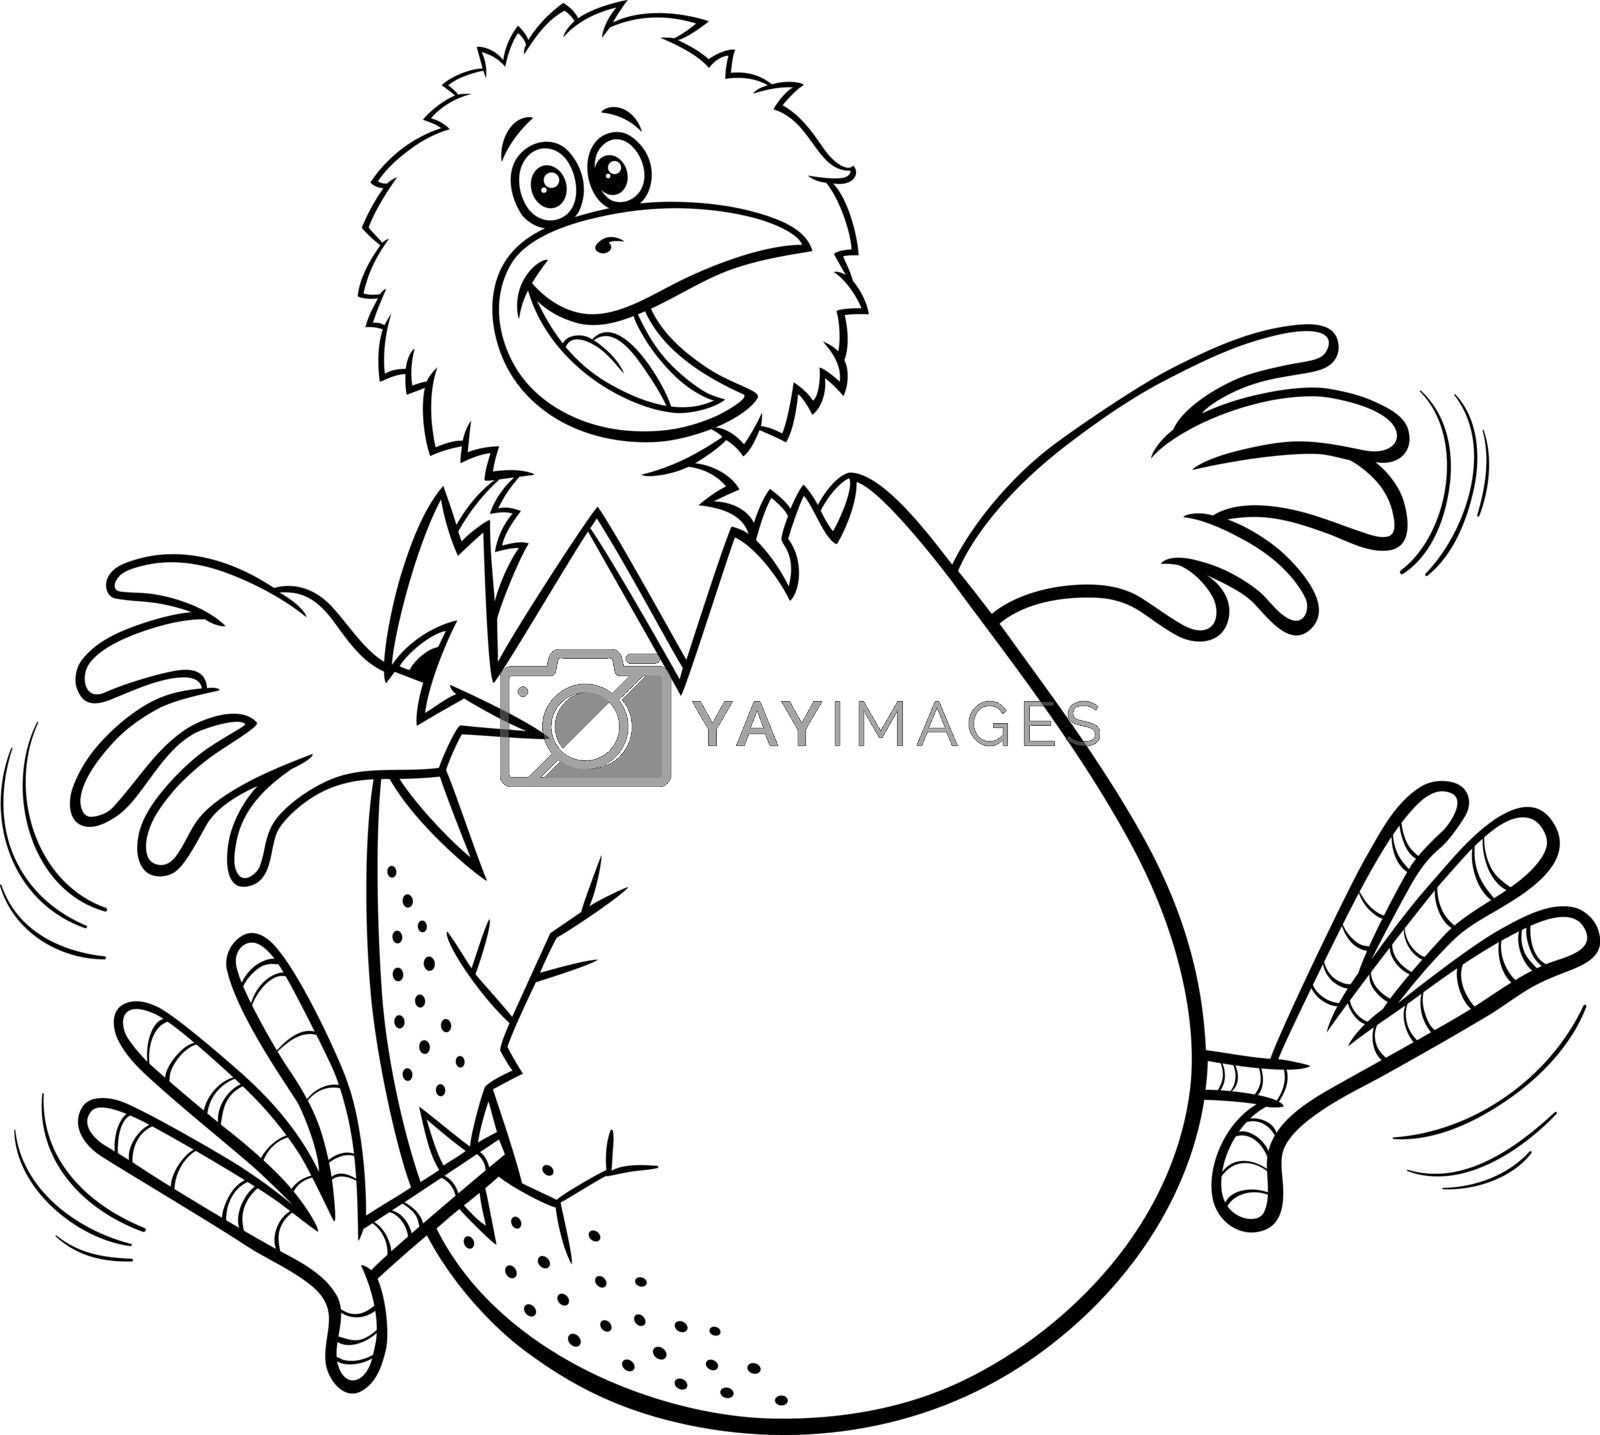 Black and white cartoon illustration of funny little chick hatching from egg coloring book page